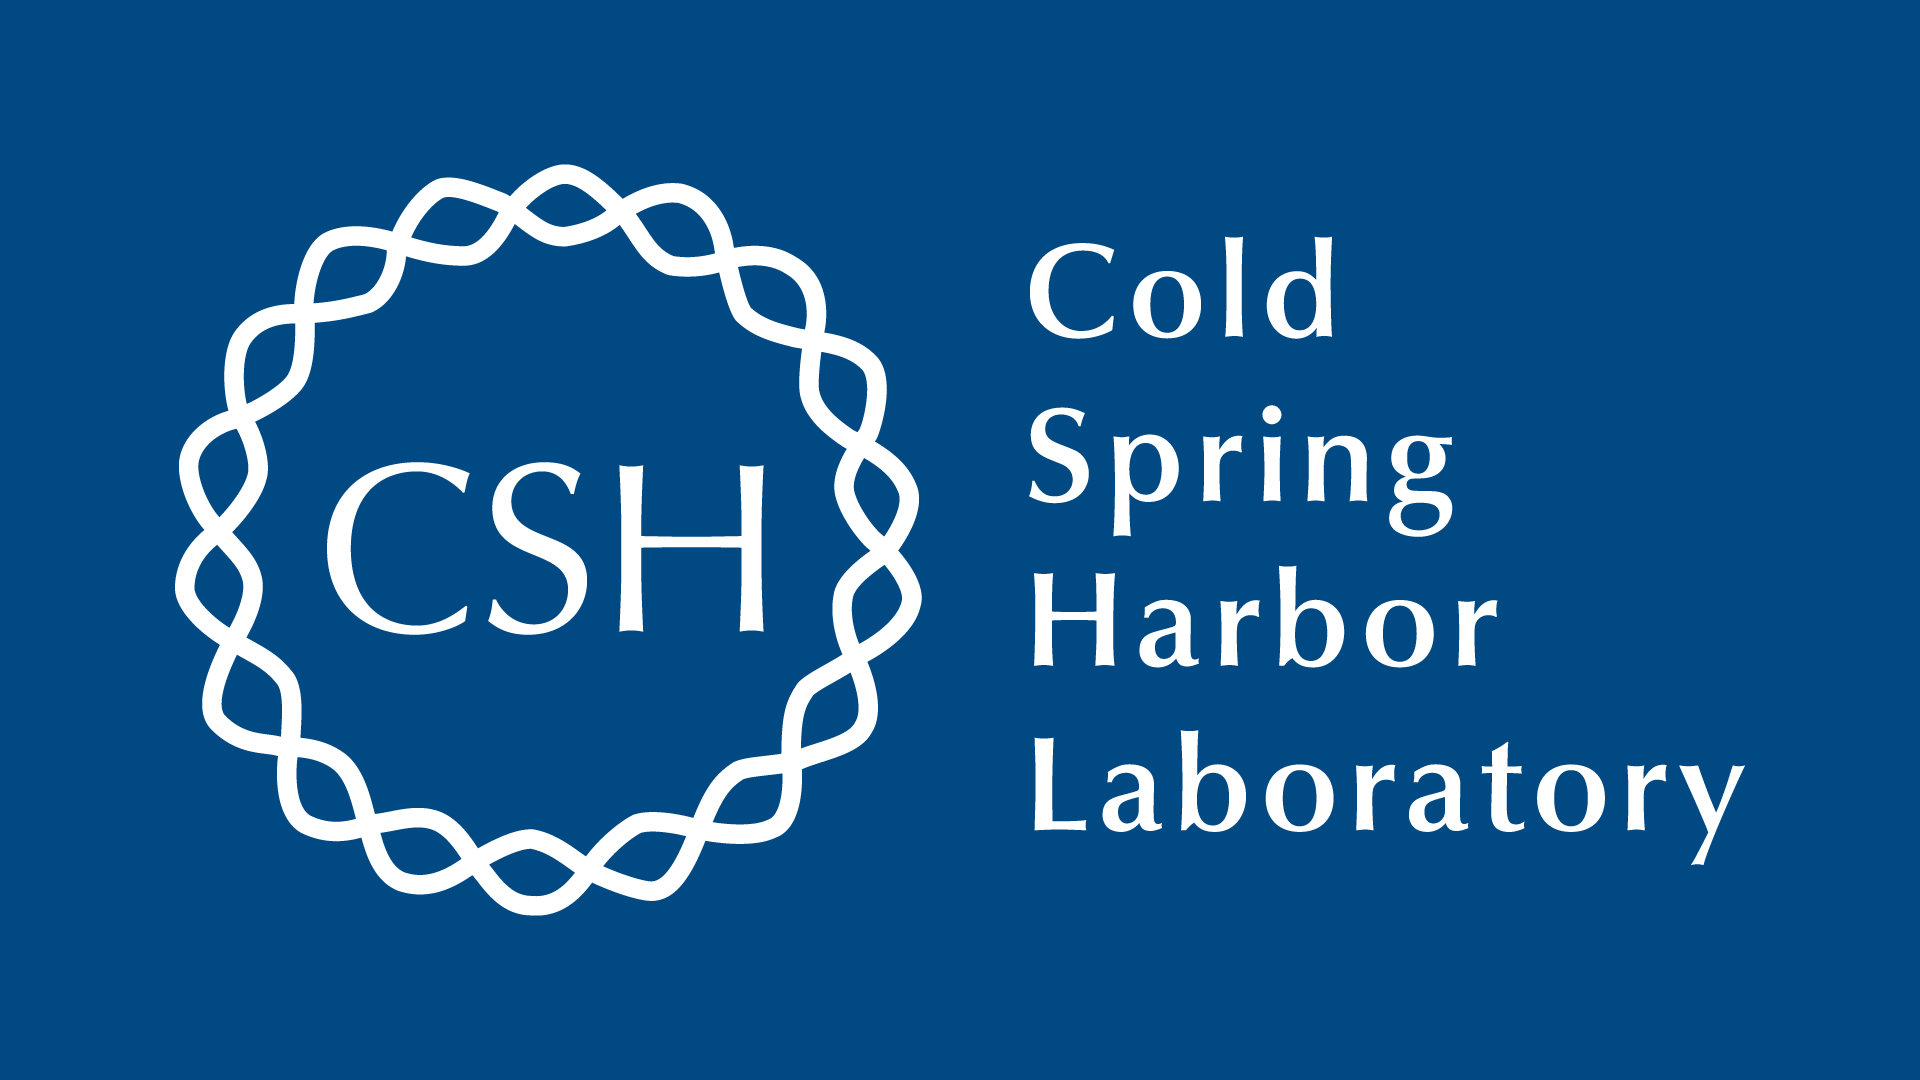 Cold spring harbor laboratory advancing the frontiers of biology cold spring harbor laboratory advancing the frontiers of biology through education and research cold spring harbor laboratory biocorpaavc